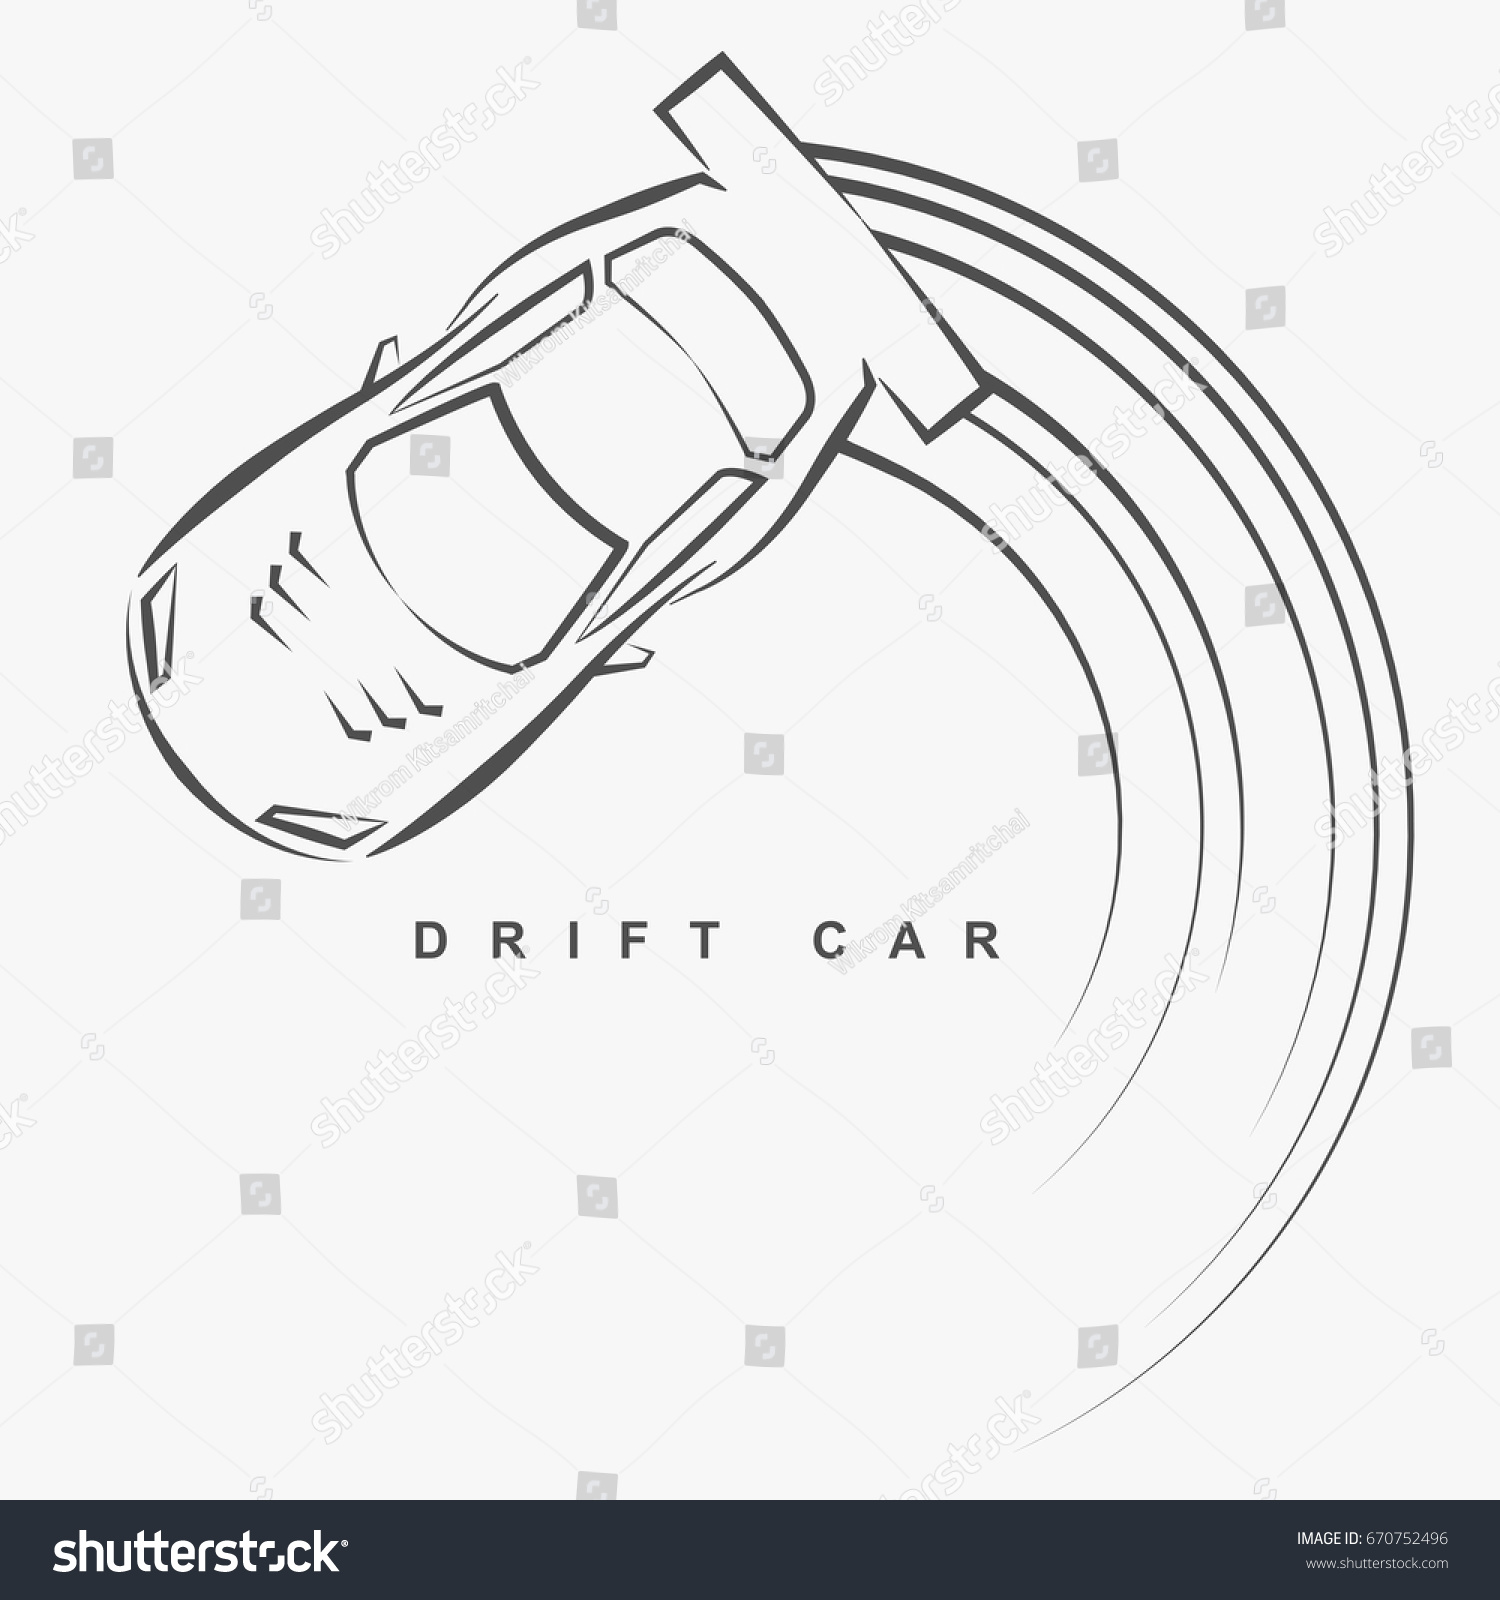 hand draw style drift car logo stock vector royalty free 670752496 Car System Diagram hand draw style of drift car logo from top view eps10 art vector